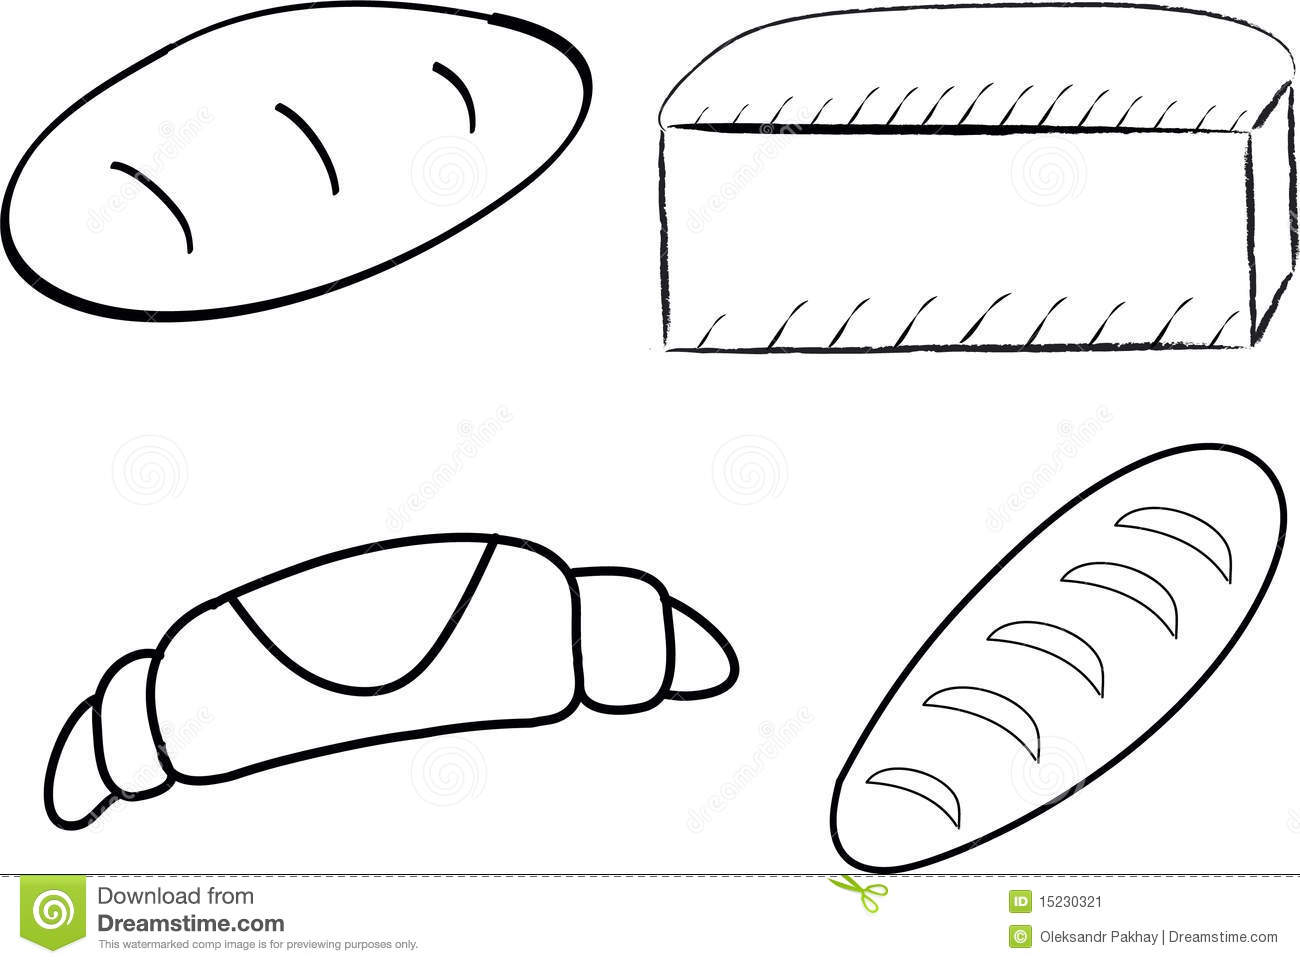 Loaf Of Bread clip art Free vector in Open office drawing svg ...